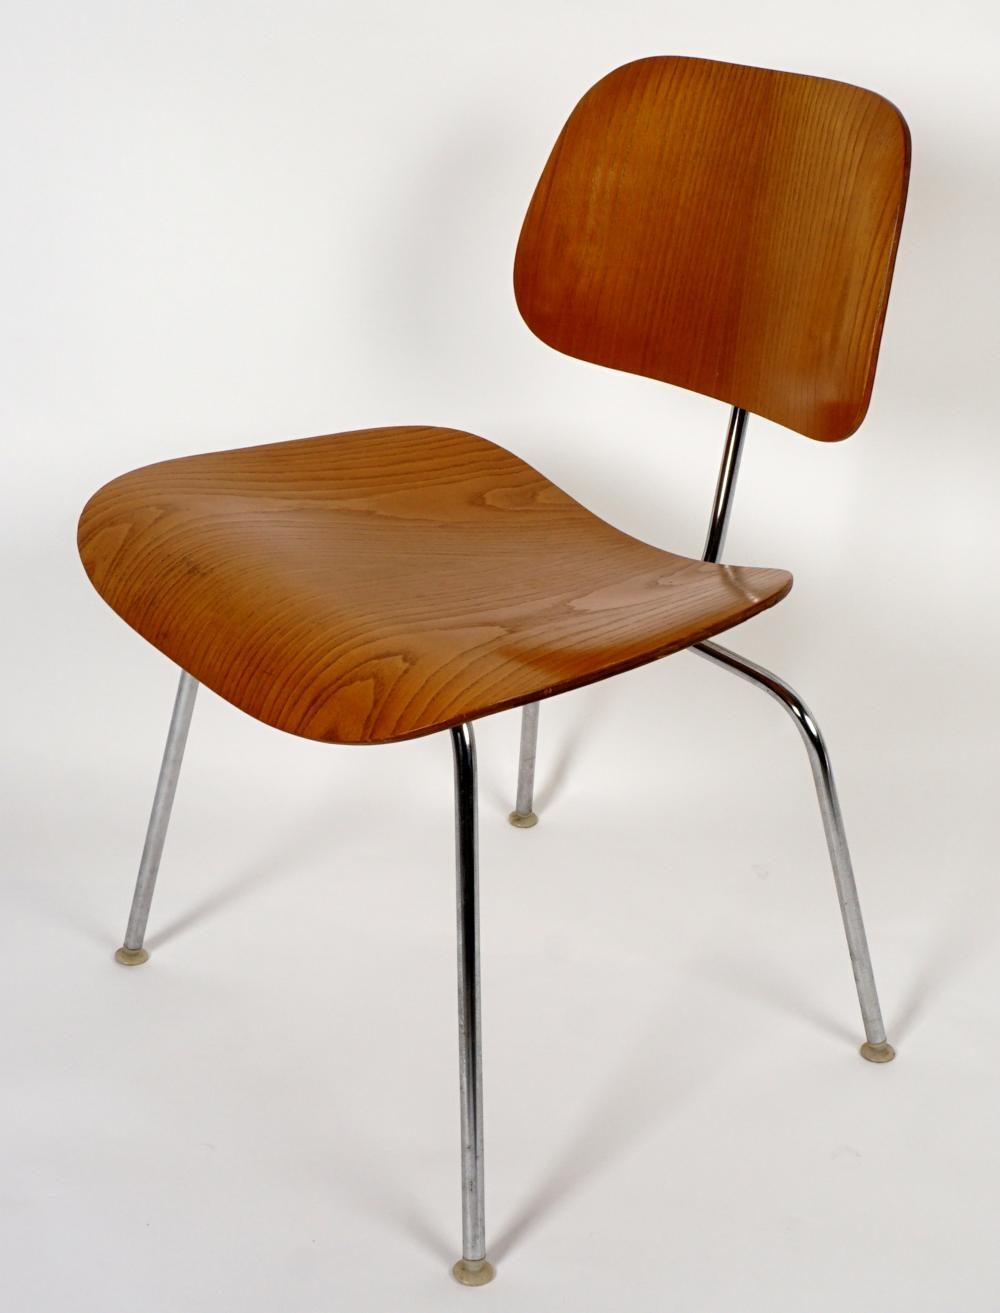 Ray And Charles Eames Ray And Charles Eames Herman Miller Dcm Chair